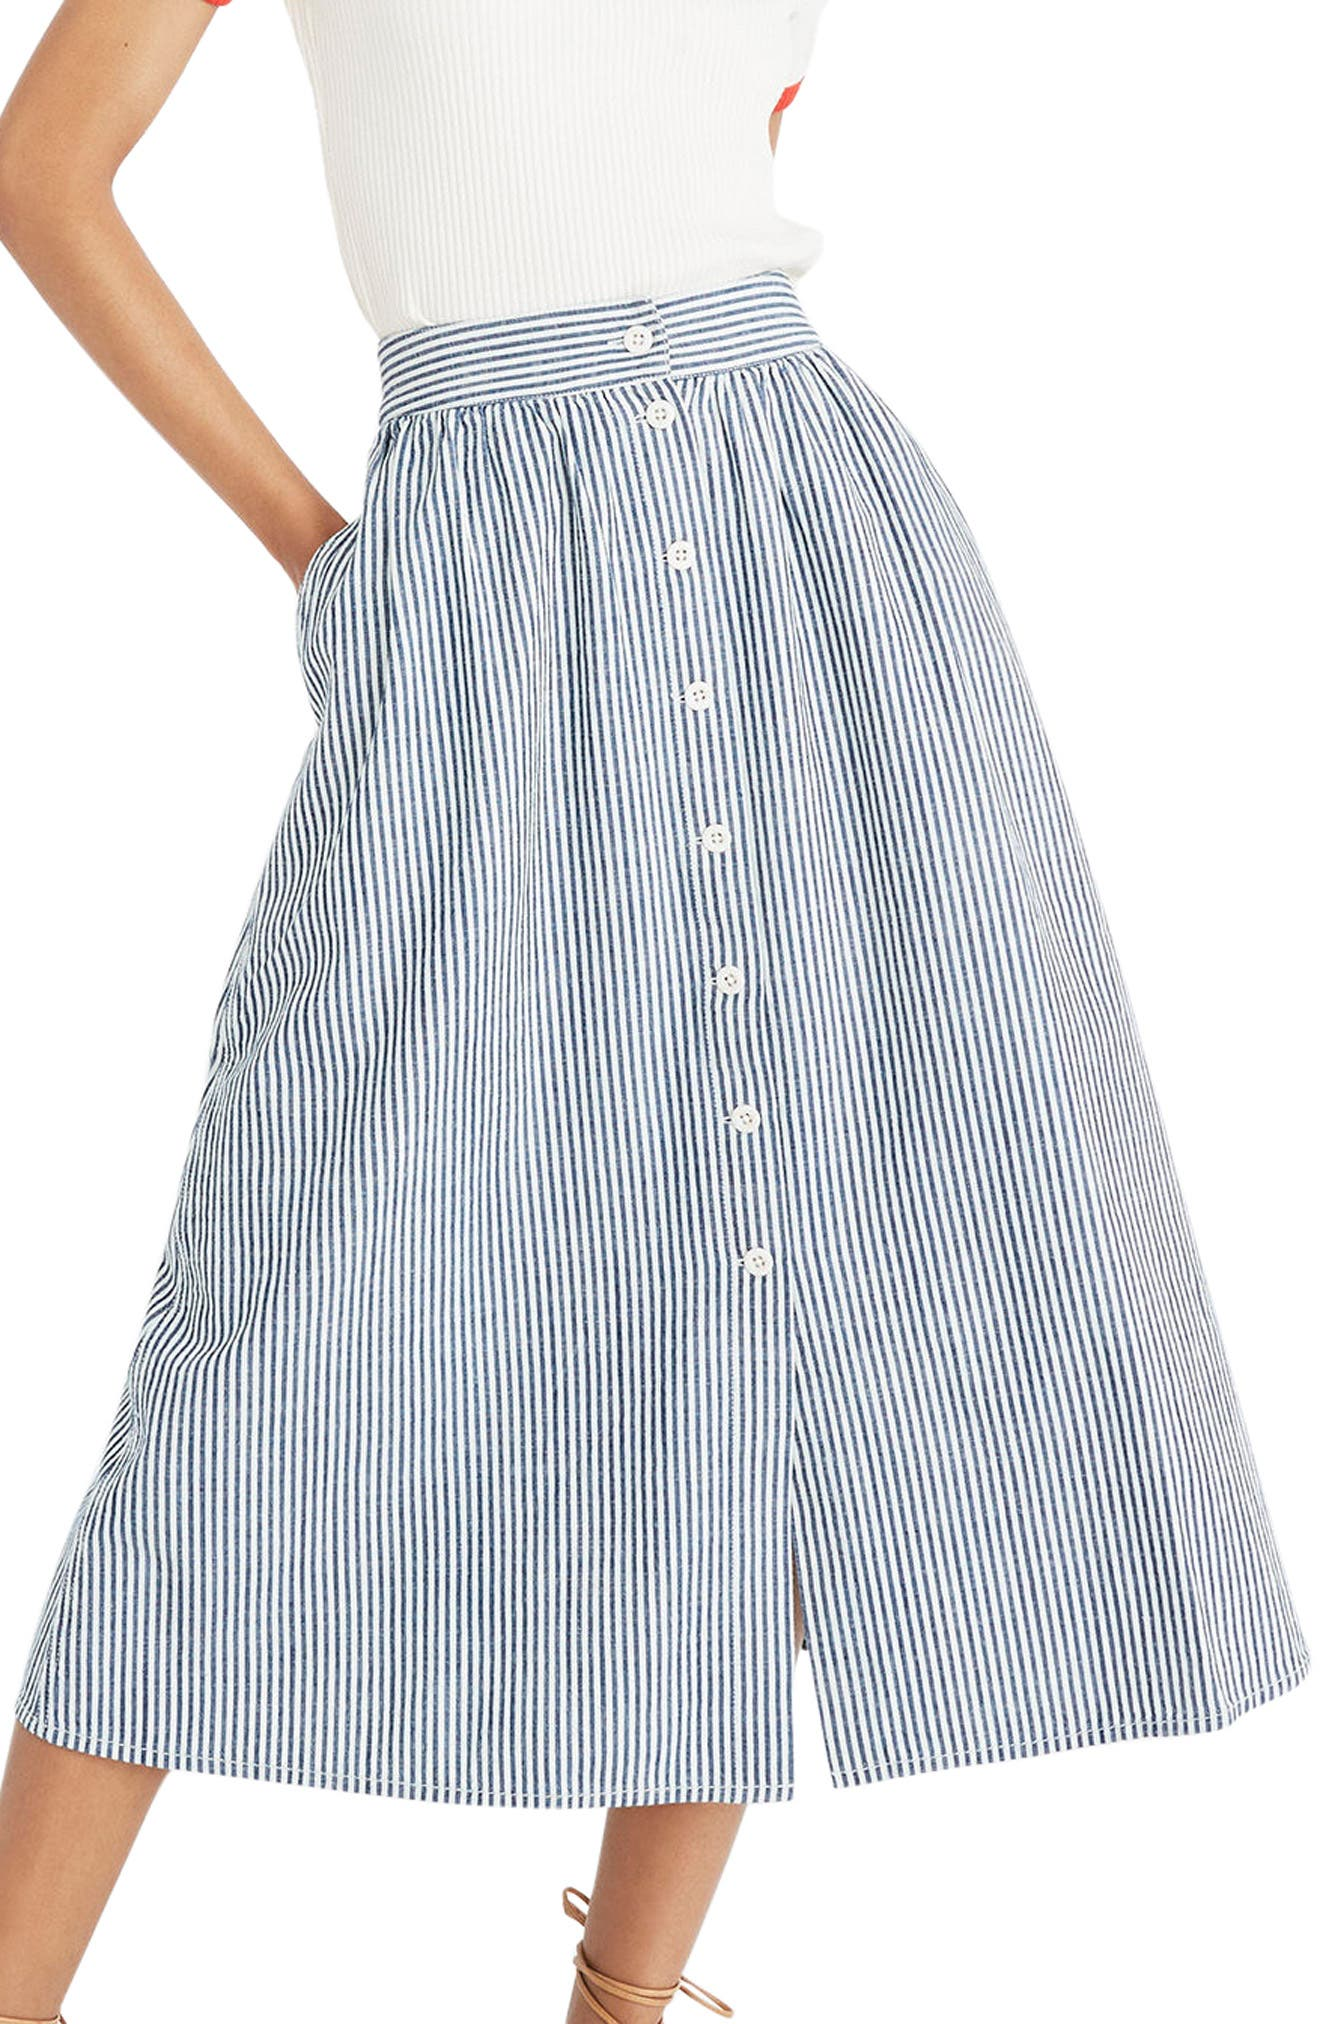 Palisade Chambray Stripe Button Front Midi Skirt,                             Main thumbnail 1, color,